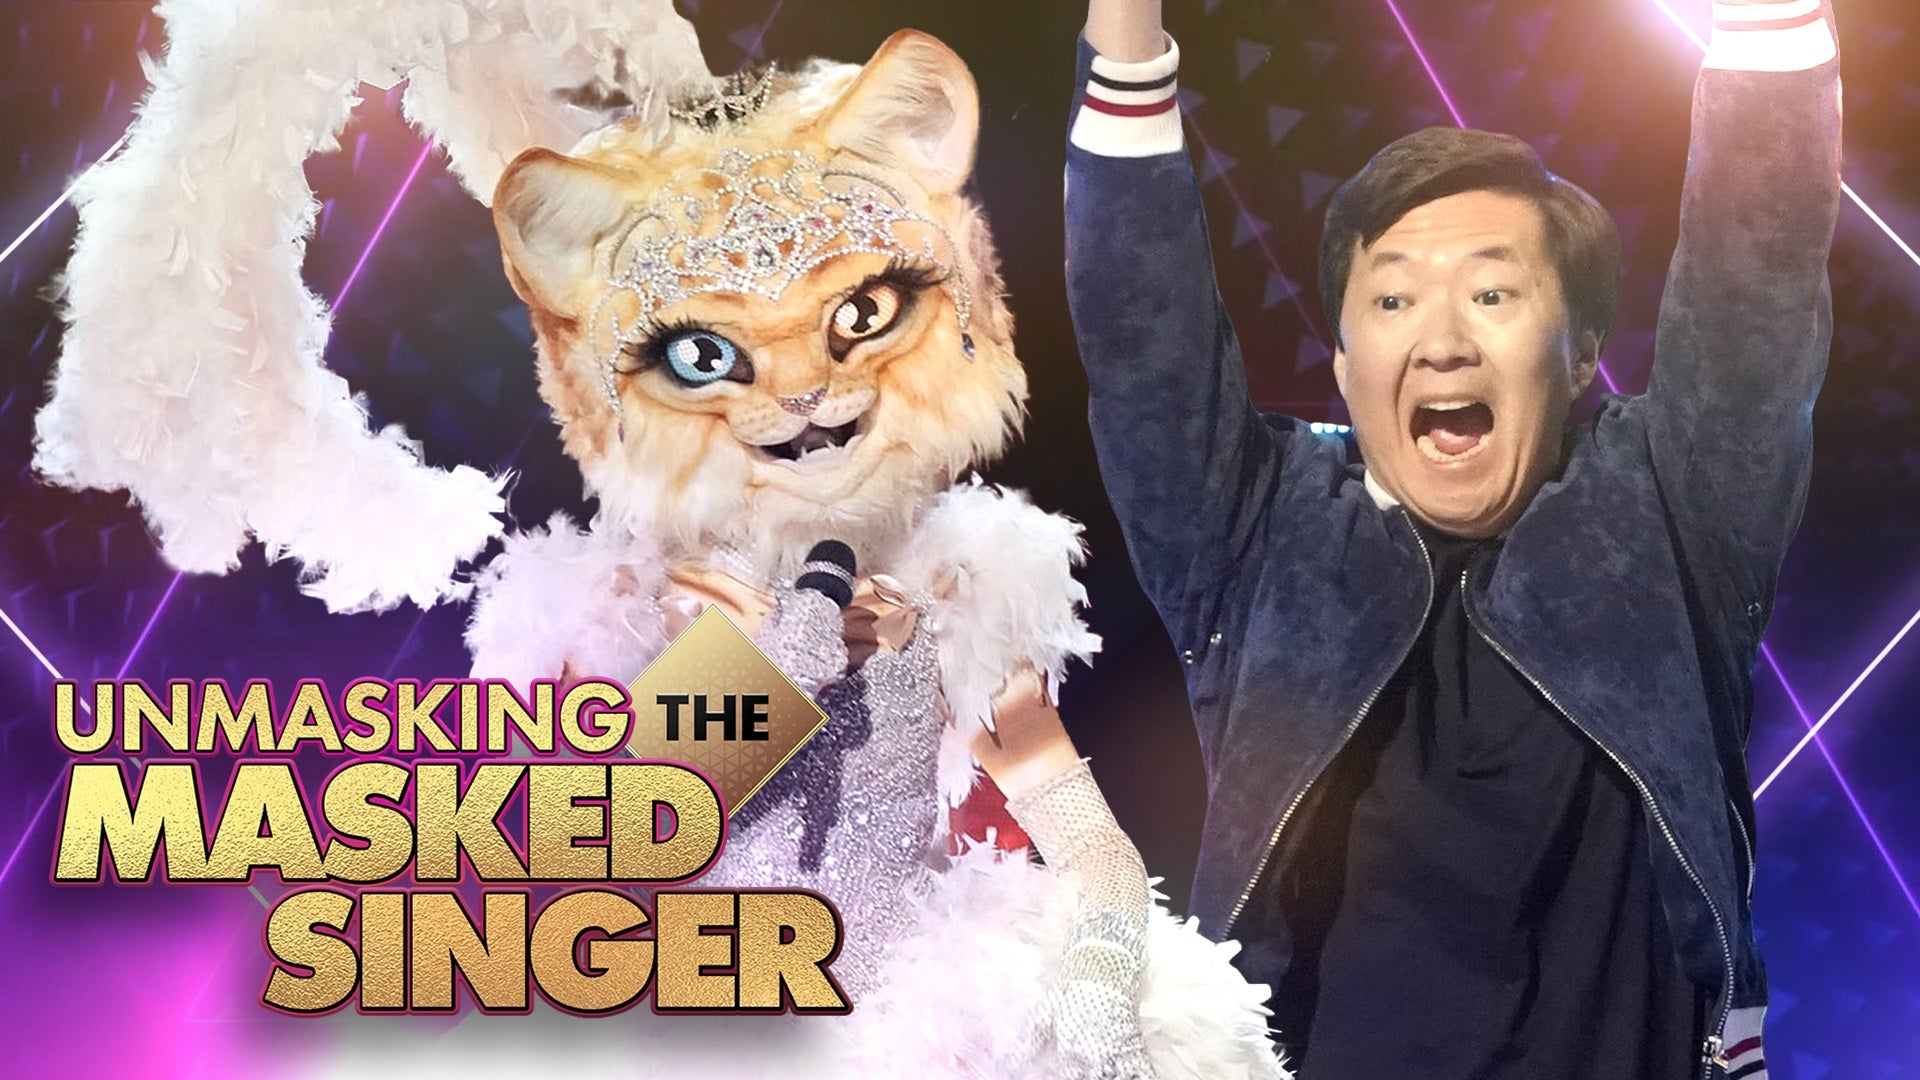 The Masked Singer Season 3 Spoilers Clues And Our Best Guesses At Secret Identities Entertainment Tonight